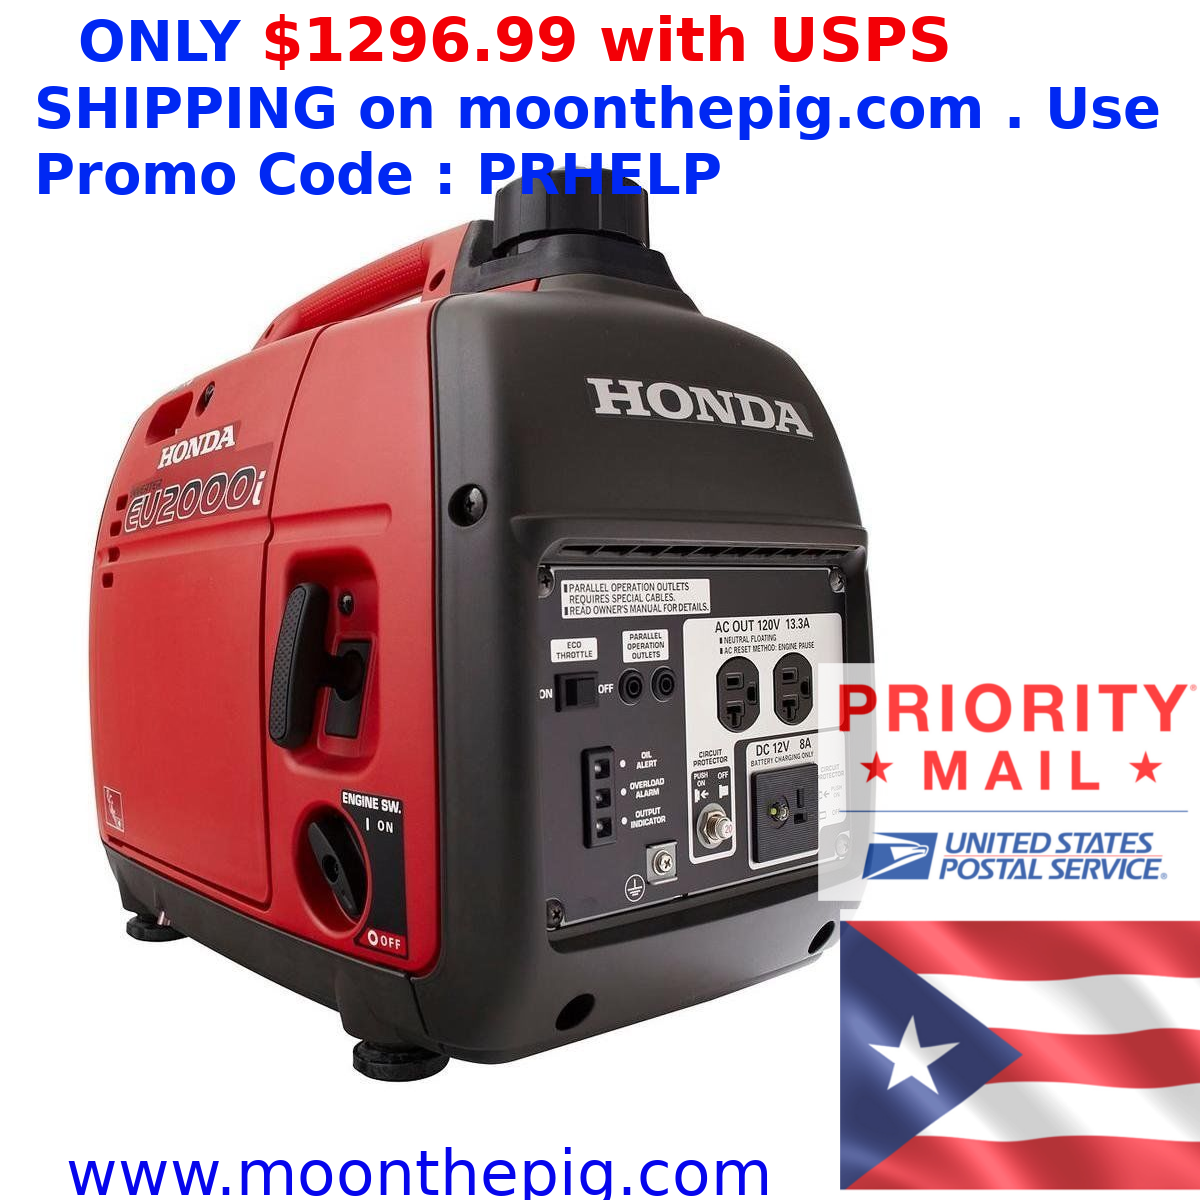 Honda Eu2000i Generator Free Shipping To Puerto Rico Fast Delivery Usps Shipping Postal The Unit